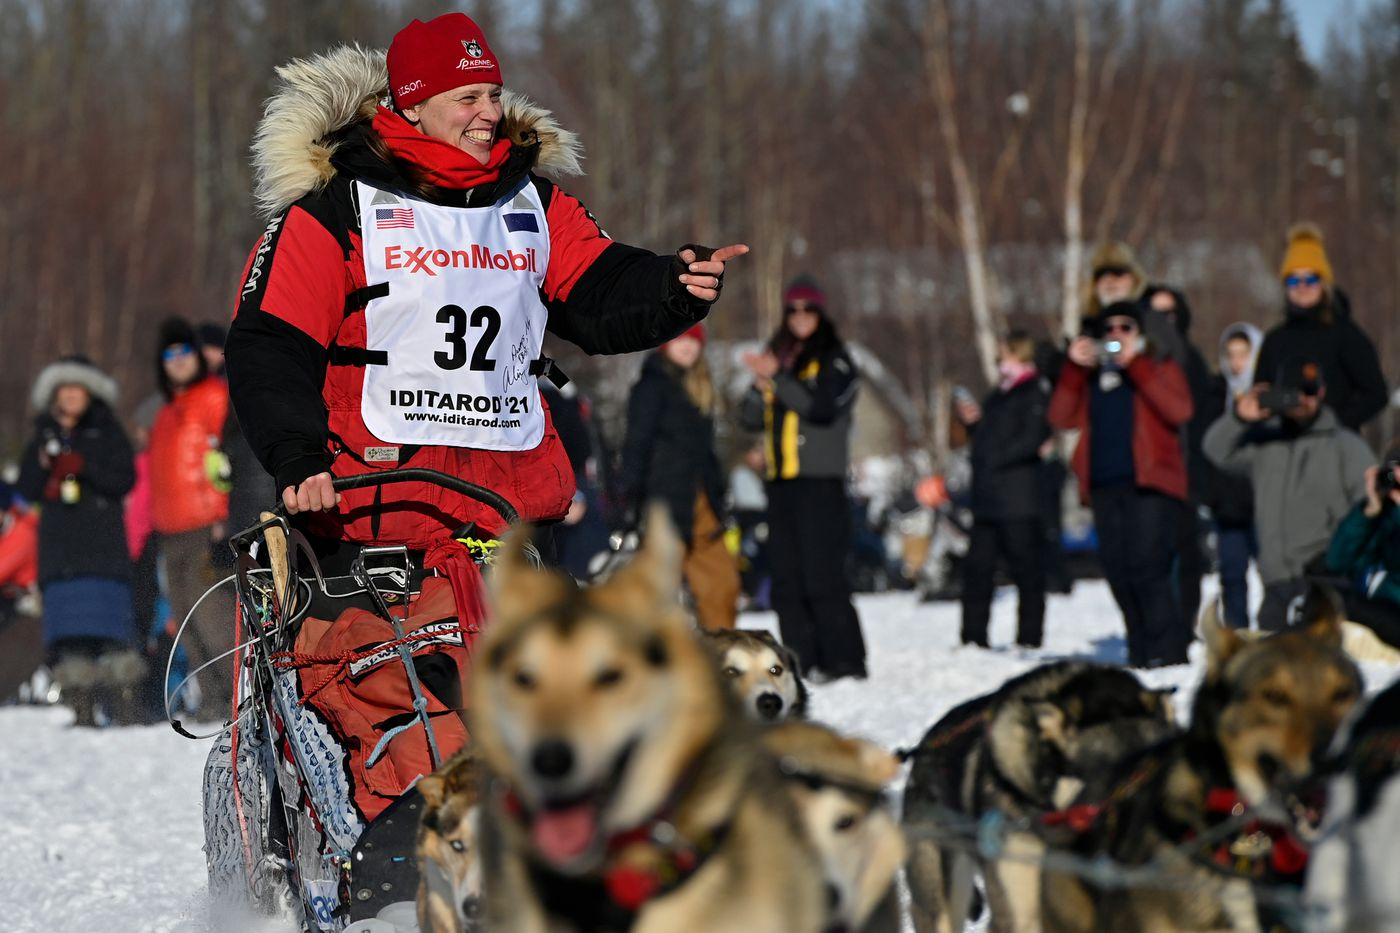 Aliy Zirkle, of Two Rivers, greets fans as she passes by. Zirkle says this is will be her last Iditarod start. (Marc Lester / ADN)